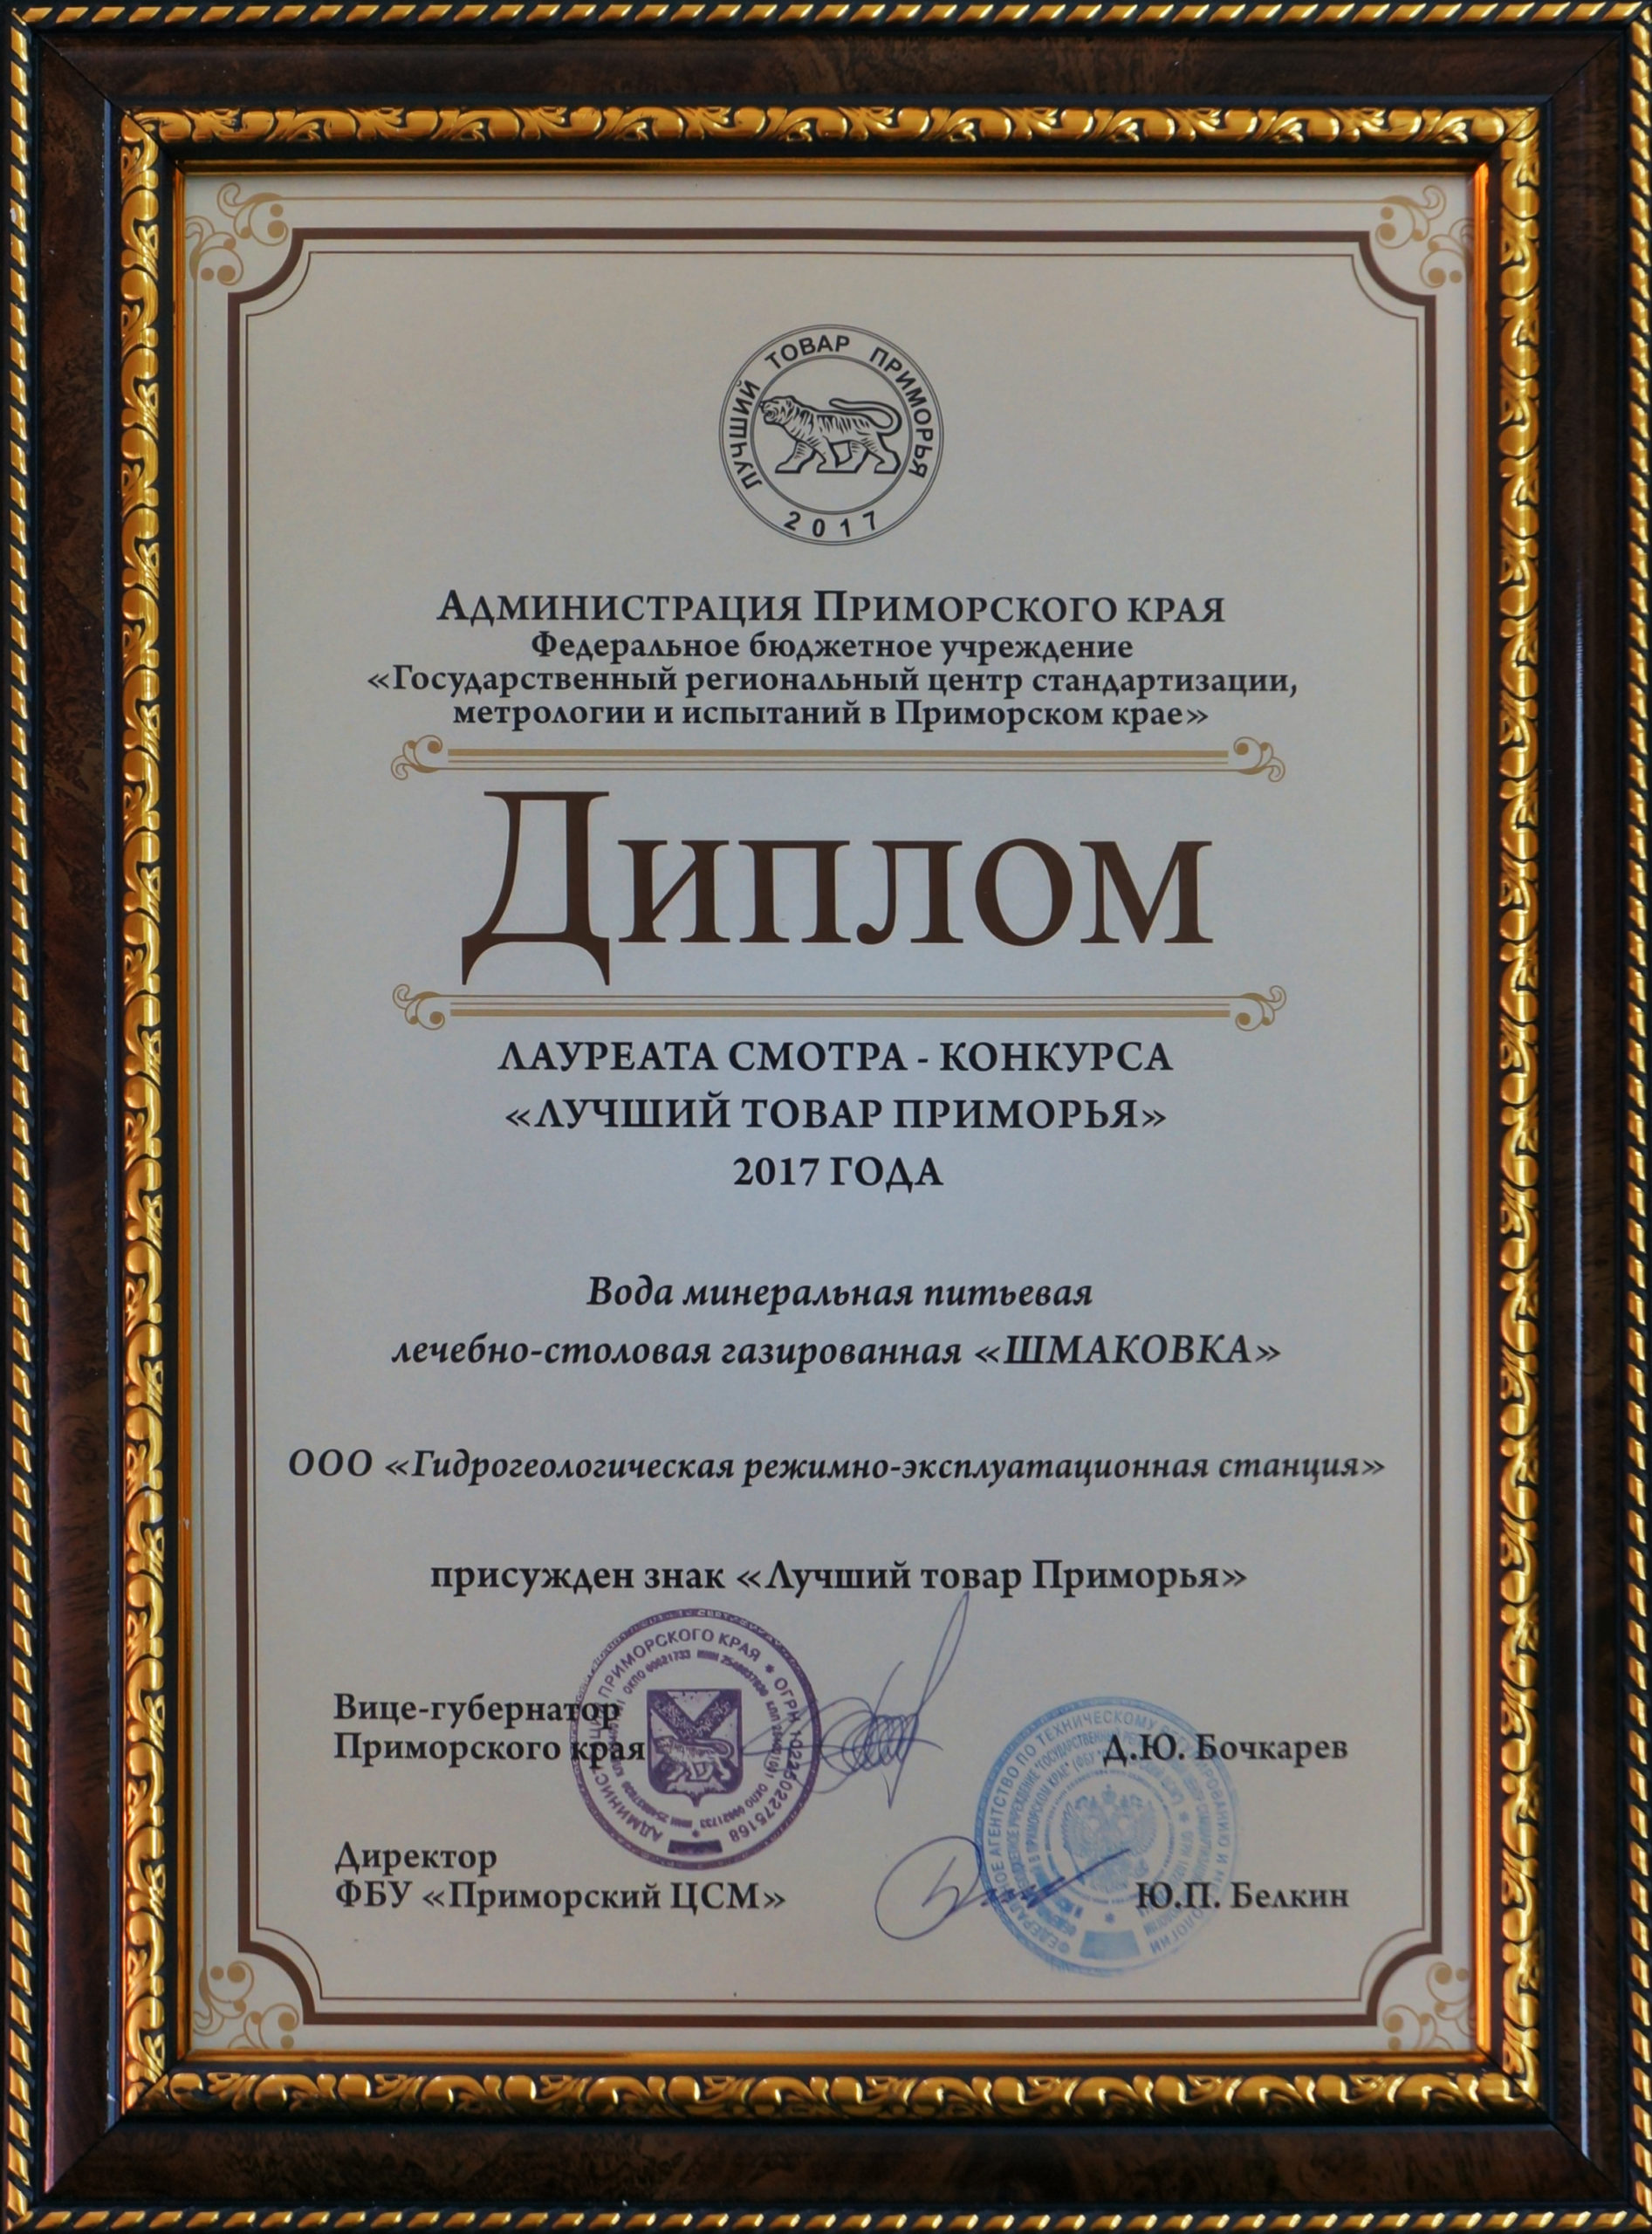 """Therapeutic-table water """"Shmakovskaya"""" - Laureate of the """"The Best Product of Primorye"""" review - competition 2017"""